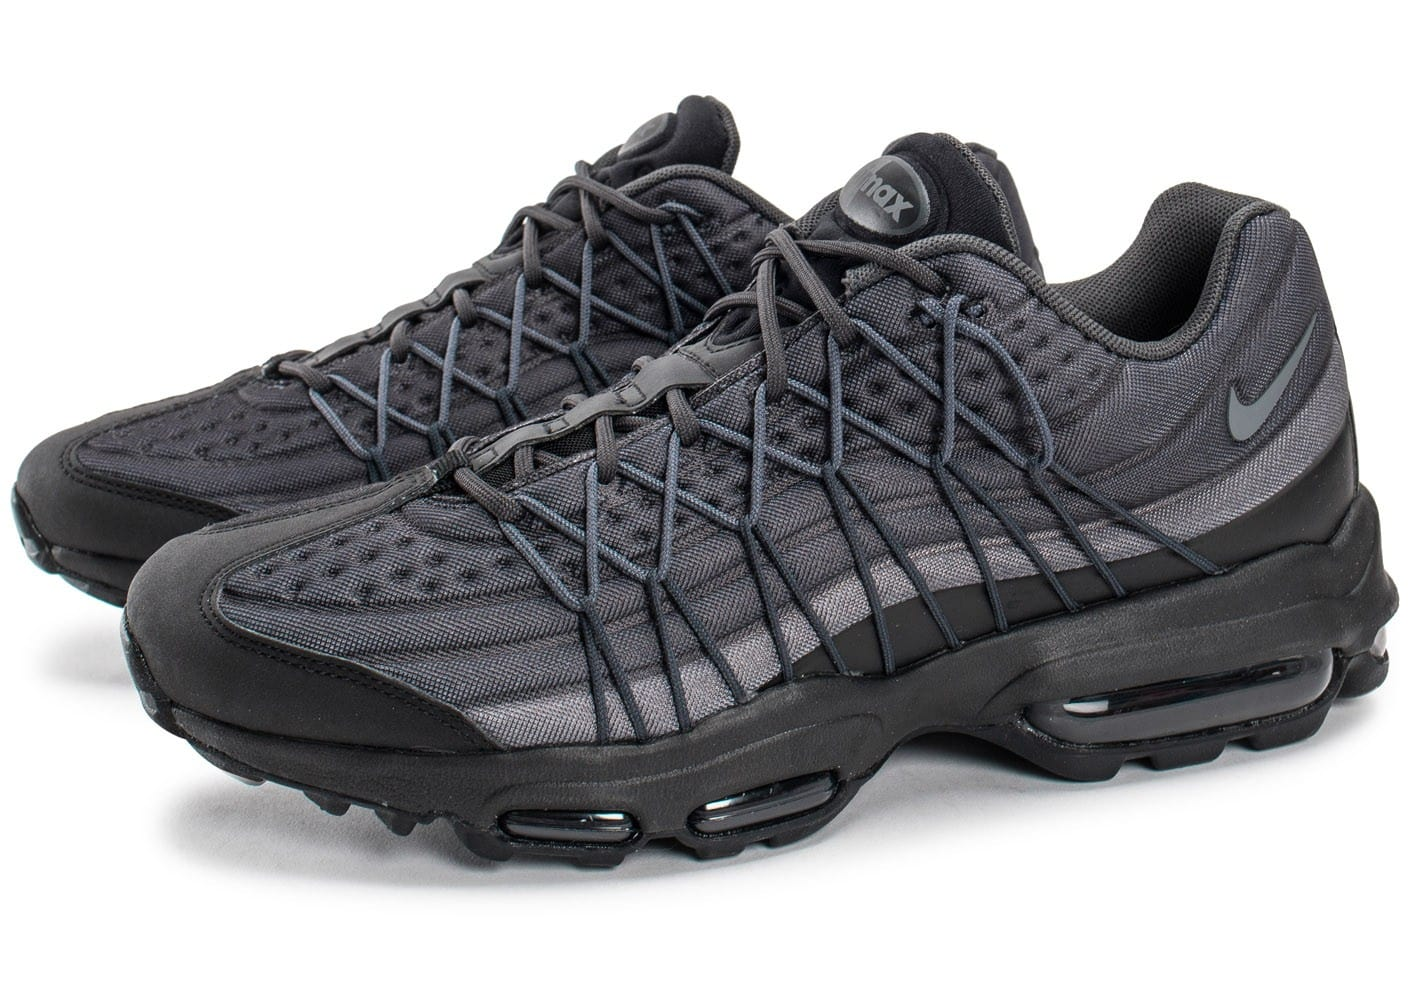 nike air max 95 ultra se noire et grise chaussures homme chausport. Black Bedroom Furniture Sets. Home Design Ideas